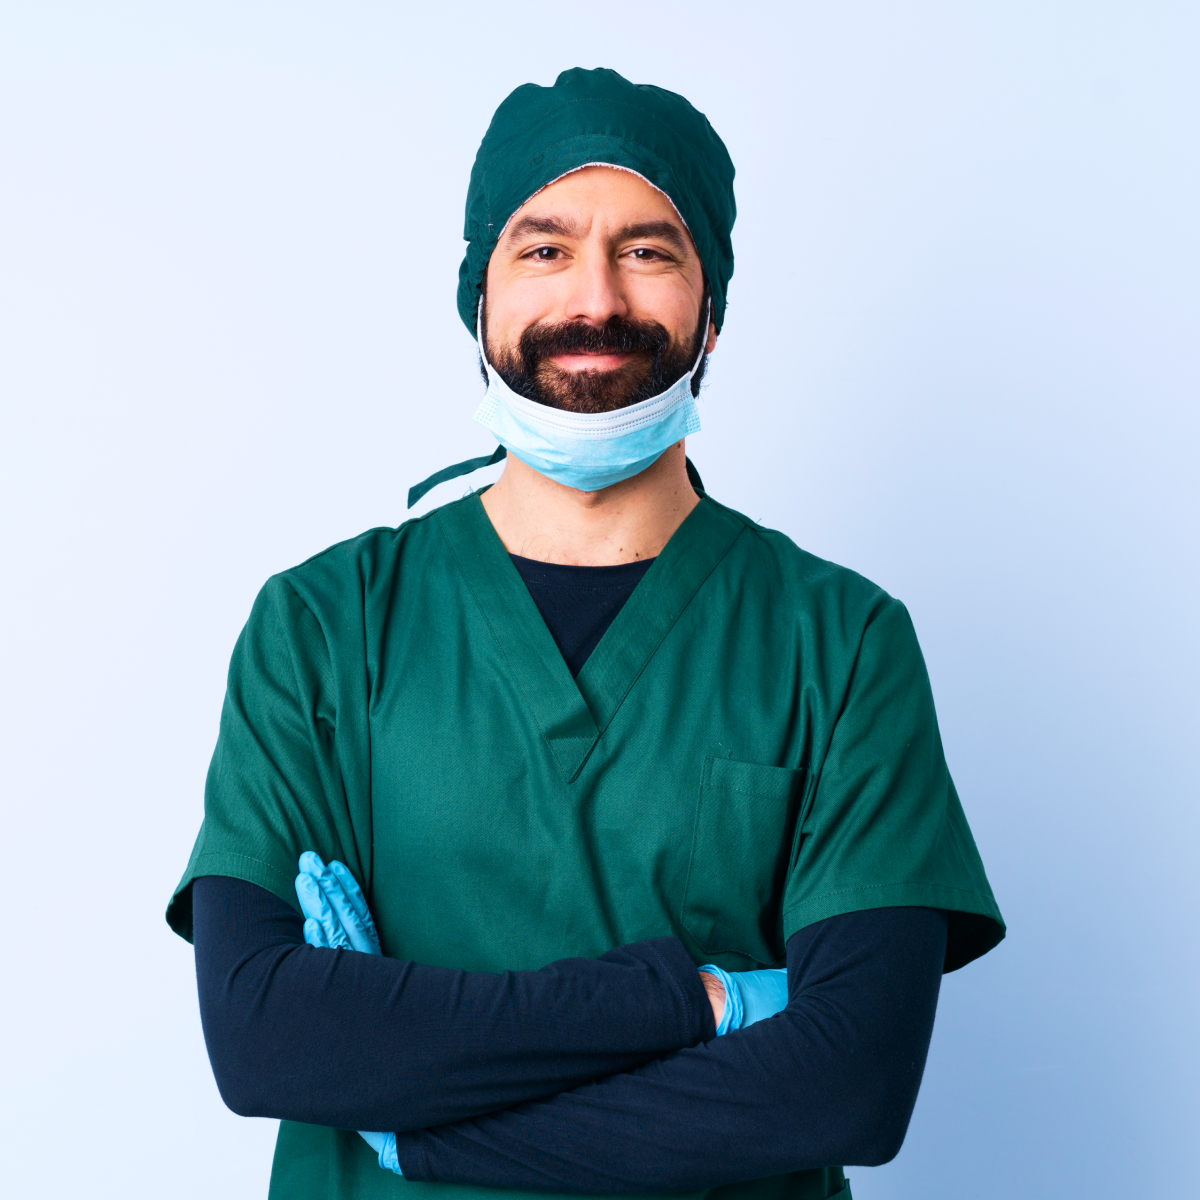 A male Doctor photo wearing face mask standing